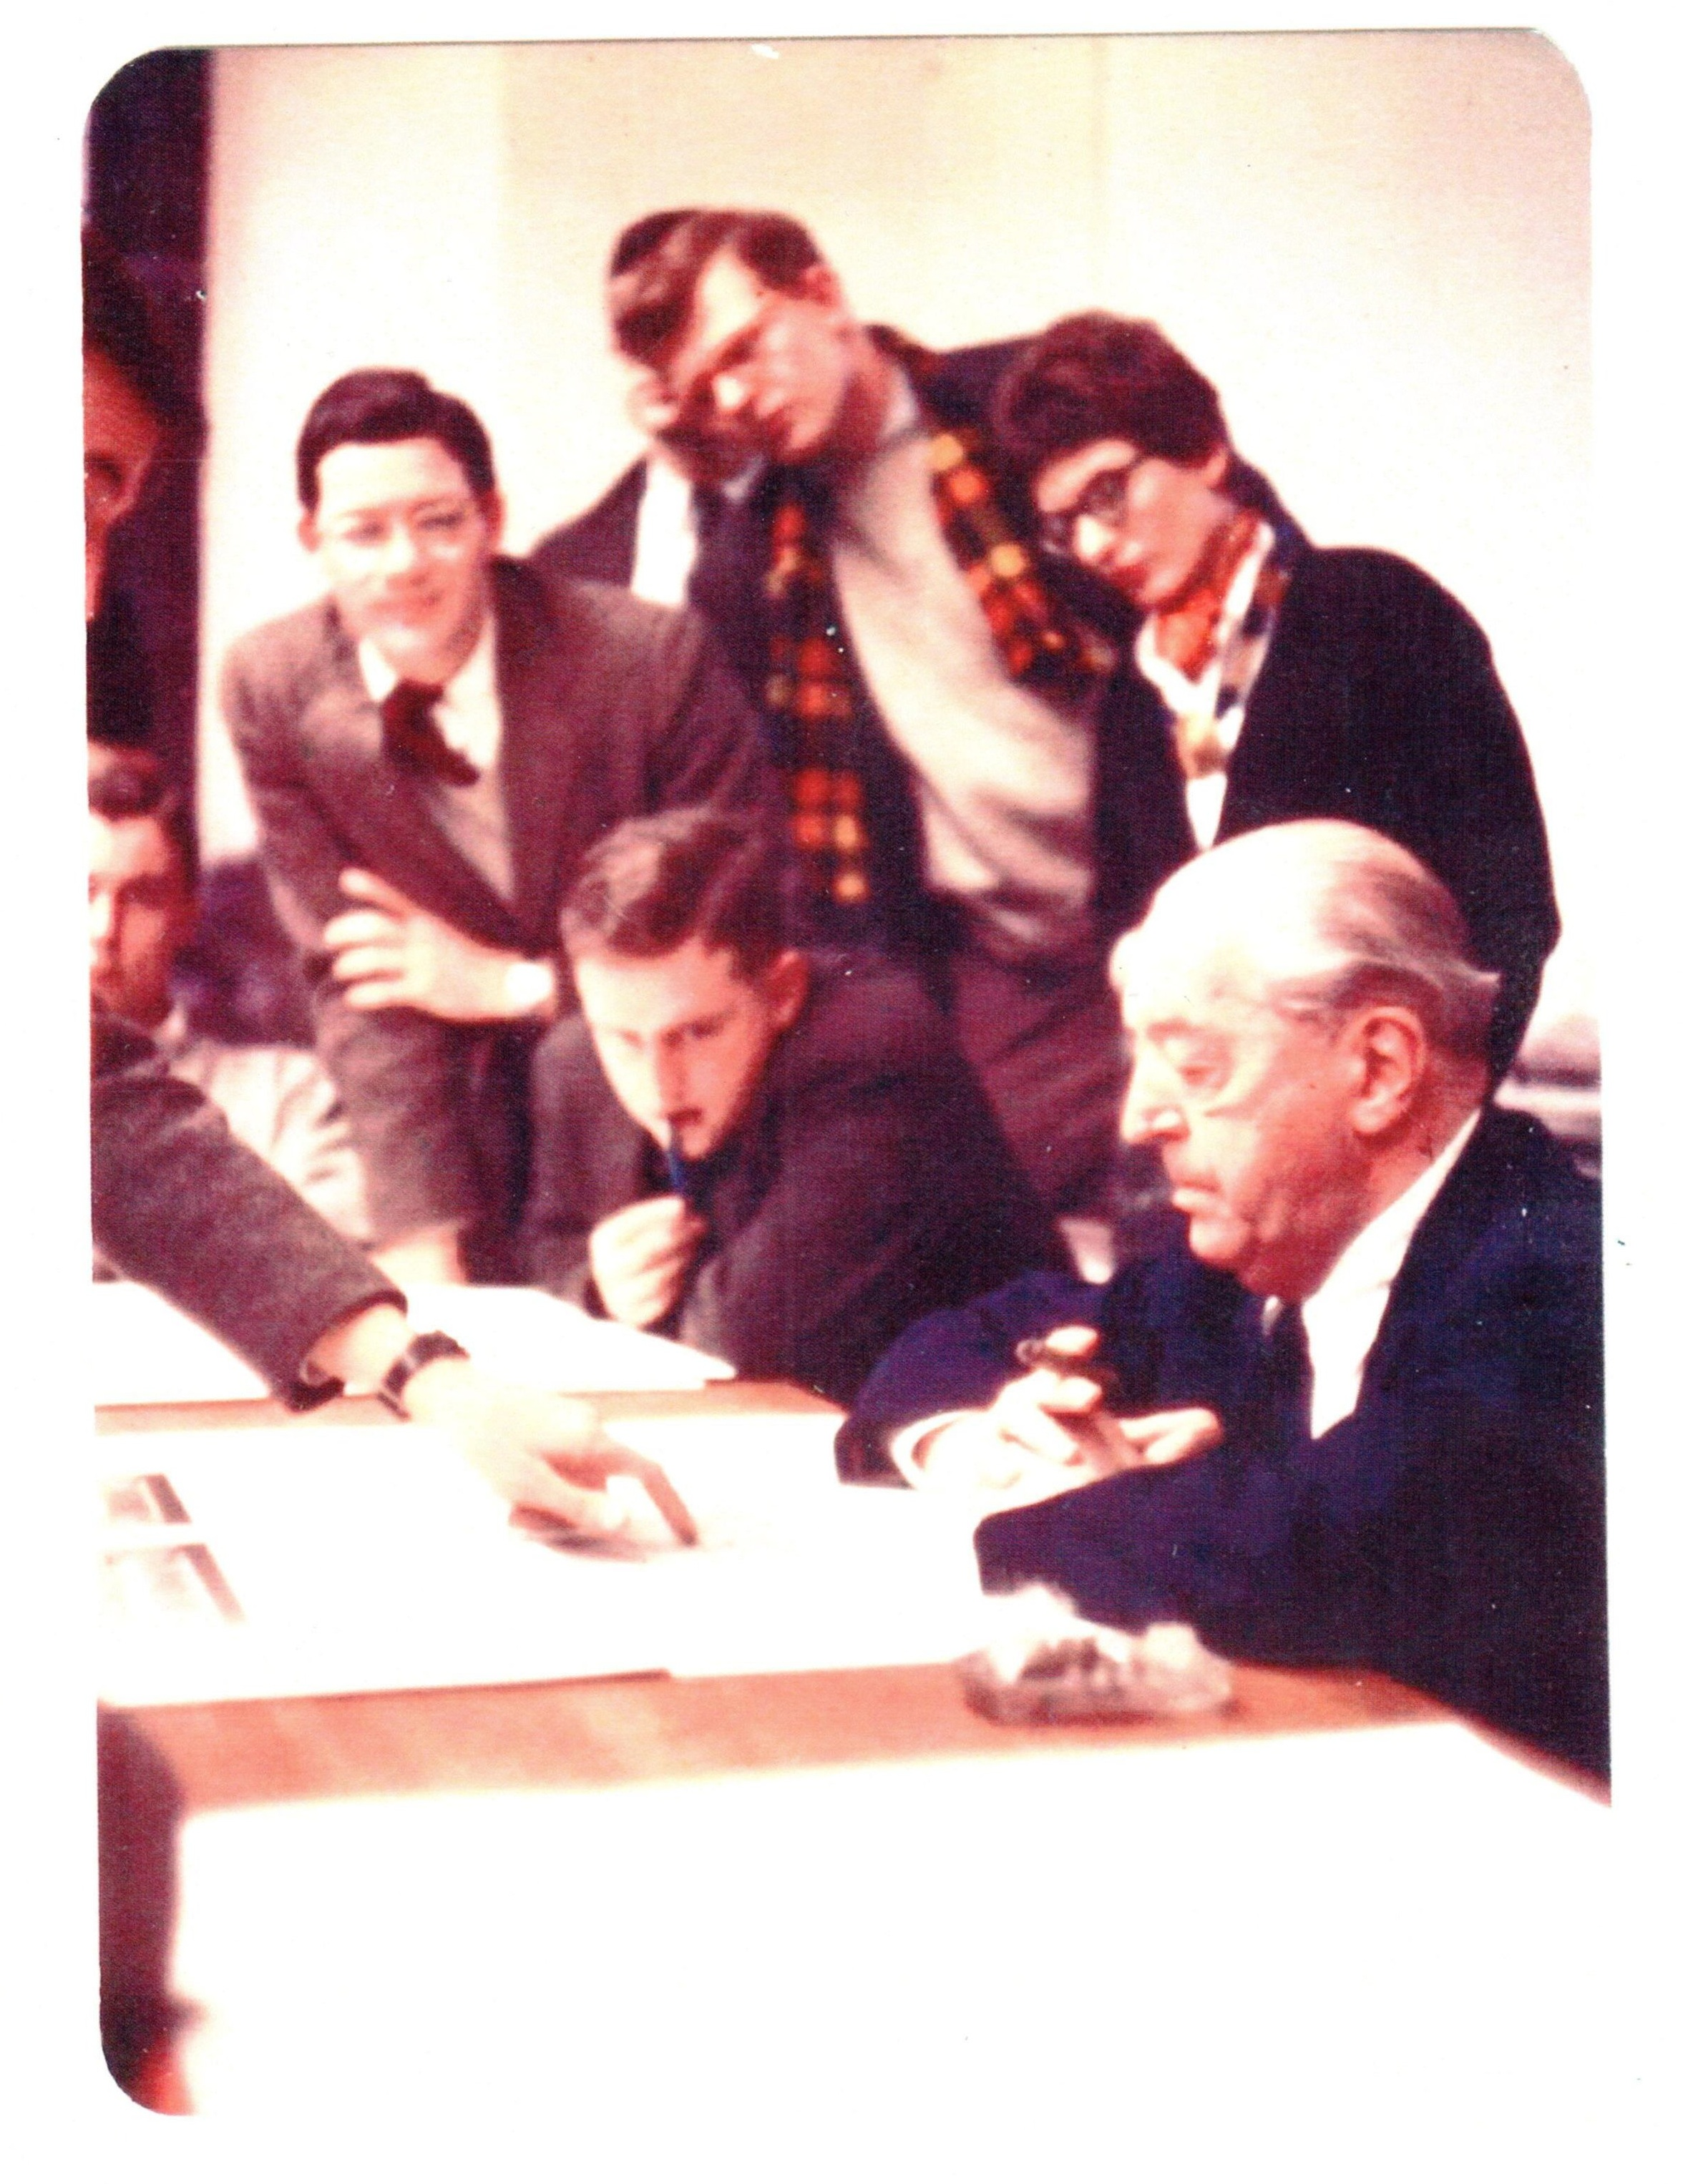 The great architect, Mies van der Rohe (1886-1969), surrounded by students—and, among them, the already distinguished Phyllis Lambert. But what was the occasion and setting?—and whose arm it that, coming from the photo's left edge?     The Canadian Center for Architecture (CCA) did some work on the photo, and the sliver of a face at the upper-left (the owner of that mysterious arm) began to become clearer.    Photo: Paul Rudolph Heritage Foundation archives, with grateful acknowledgment for the photographic enhancement work done by the Canadian Center for Architecture (CCA).